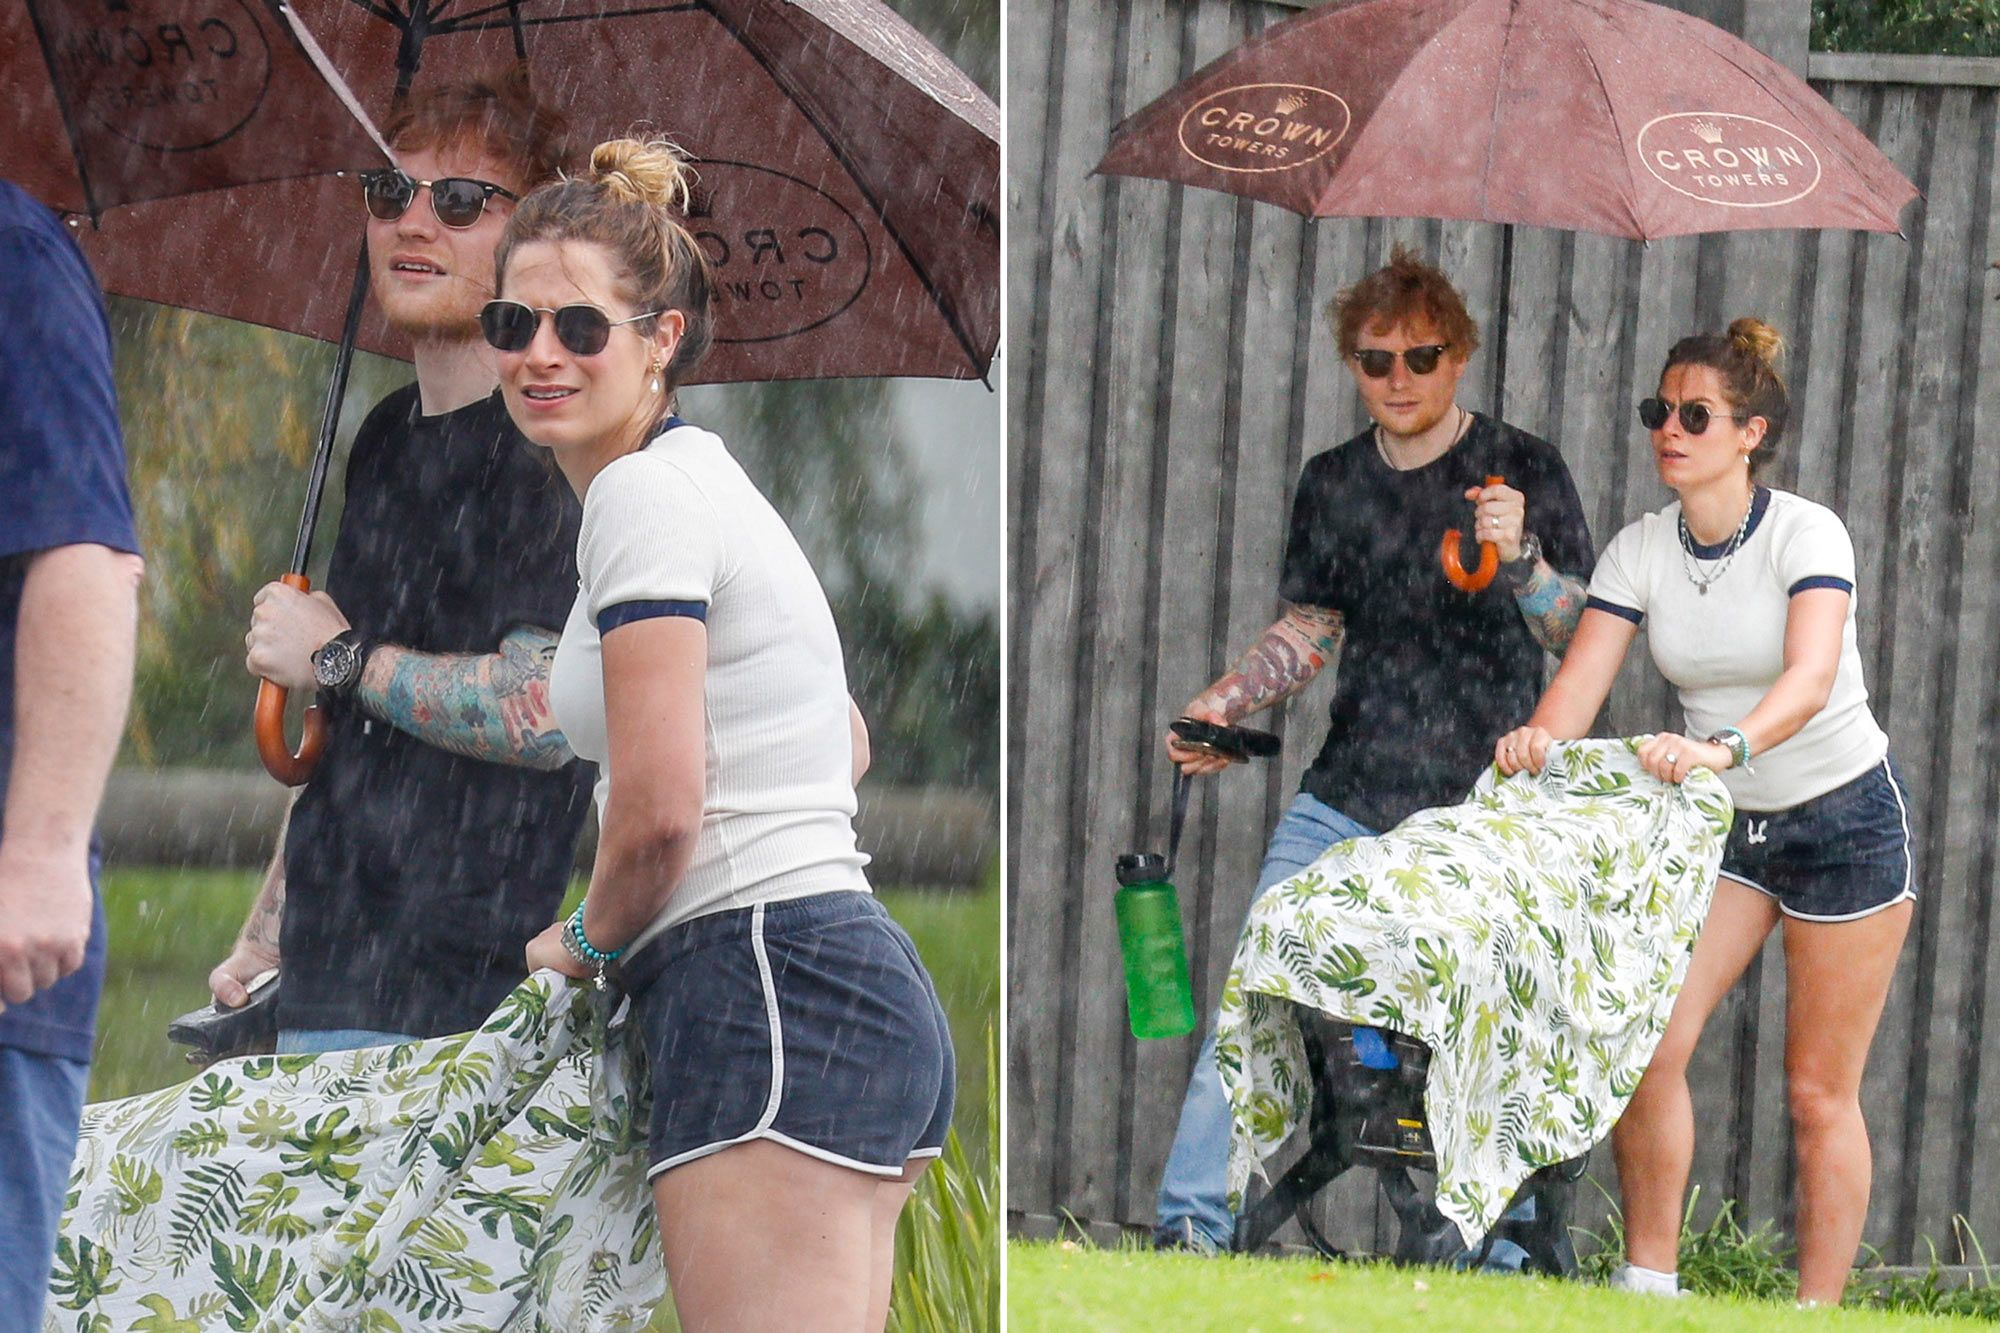 Ed Sheeran on a walk with his wife and 7-month-old daughter